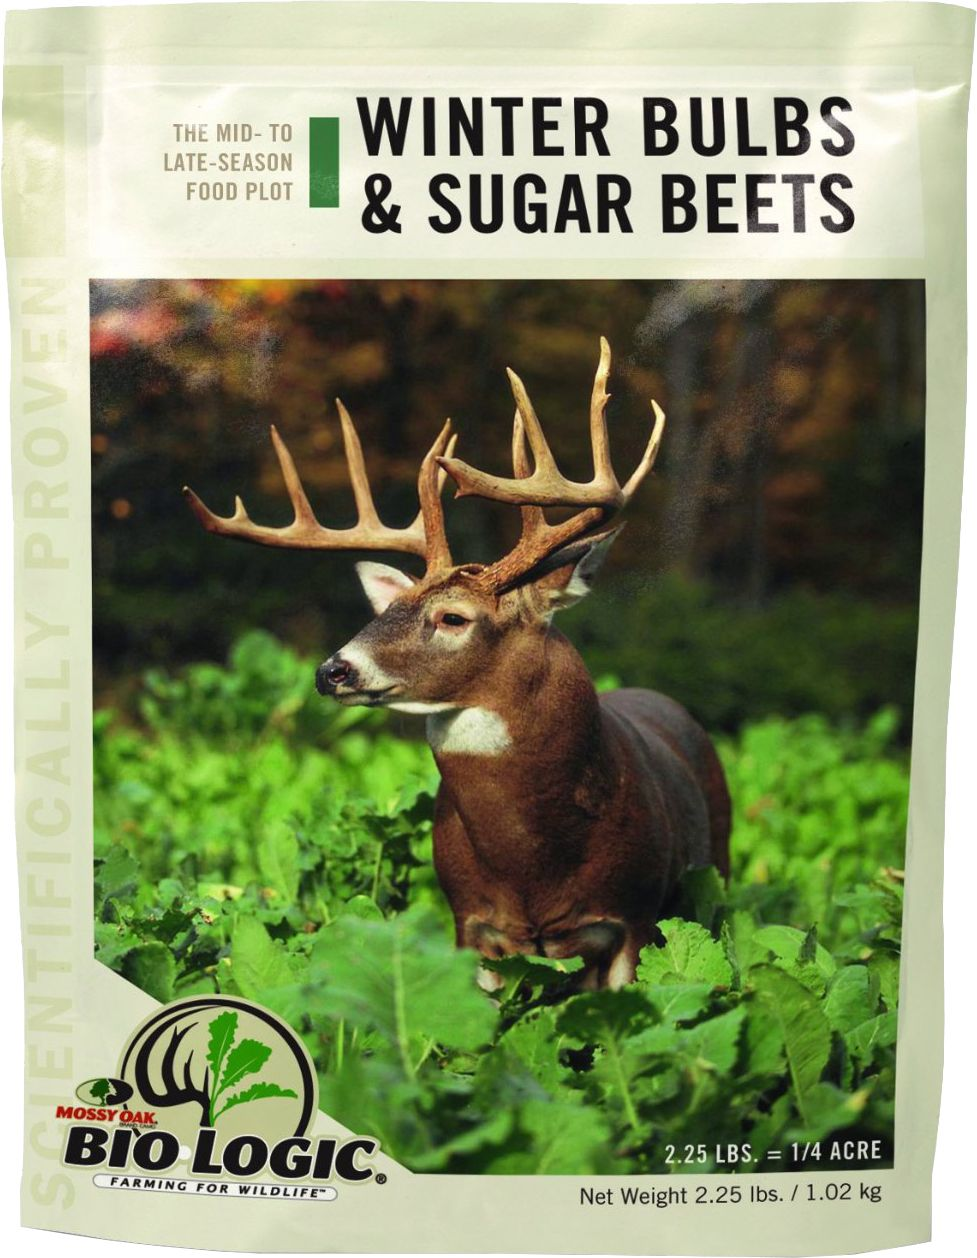 BioLogic Winter Bulbs & Sugar Beets Bag